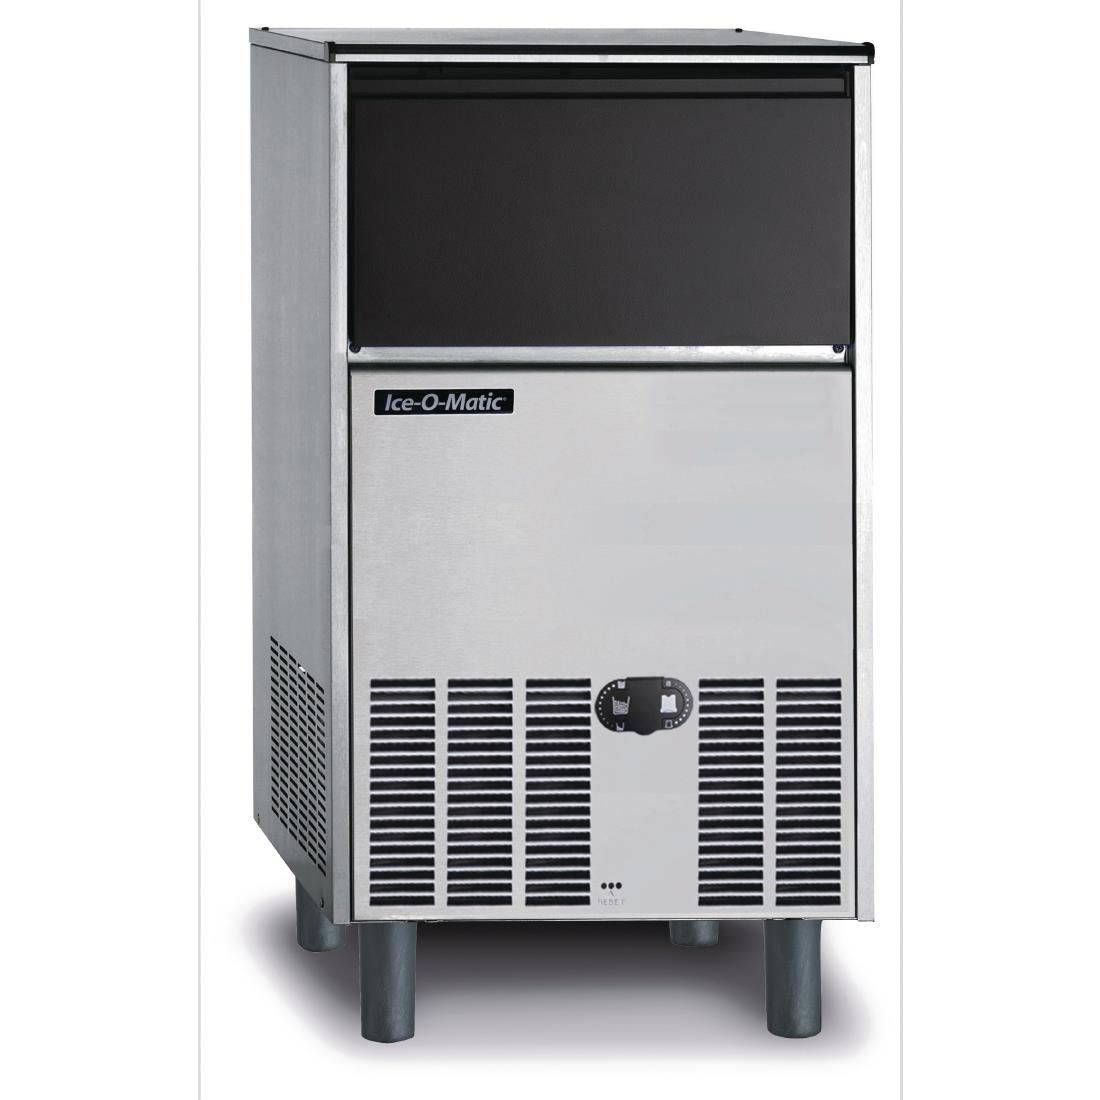 Image of Ice-O-Matic Thimble Ice Maker 46kg Output ICEU106P